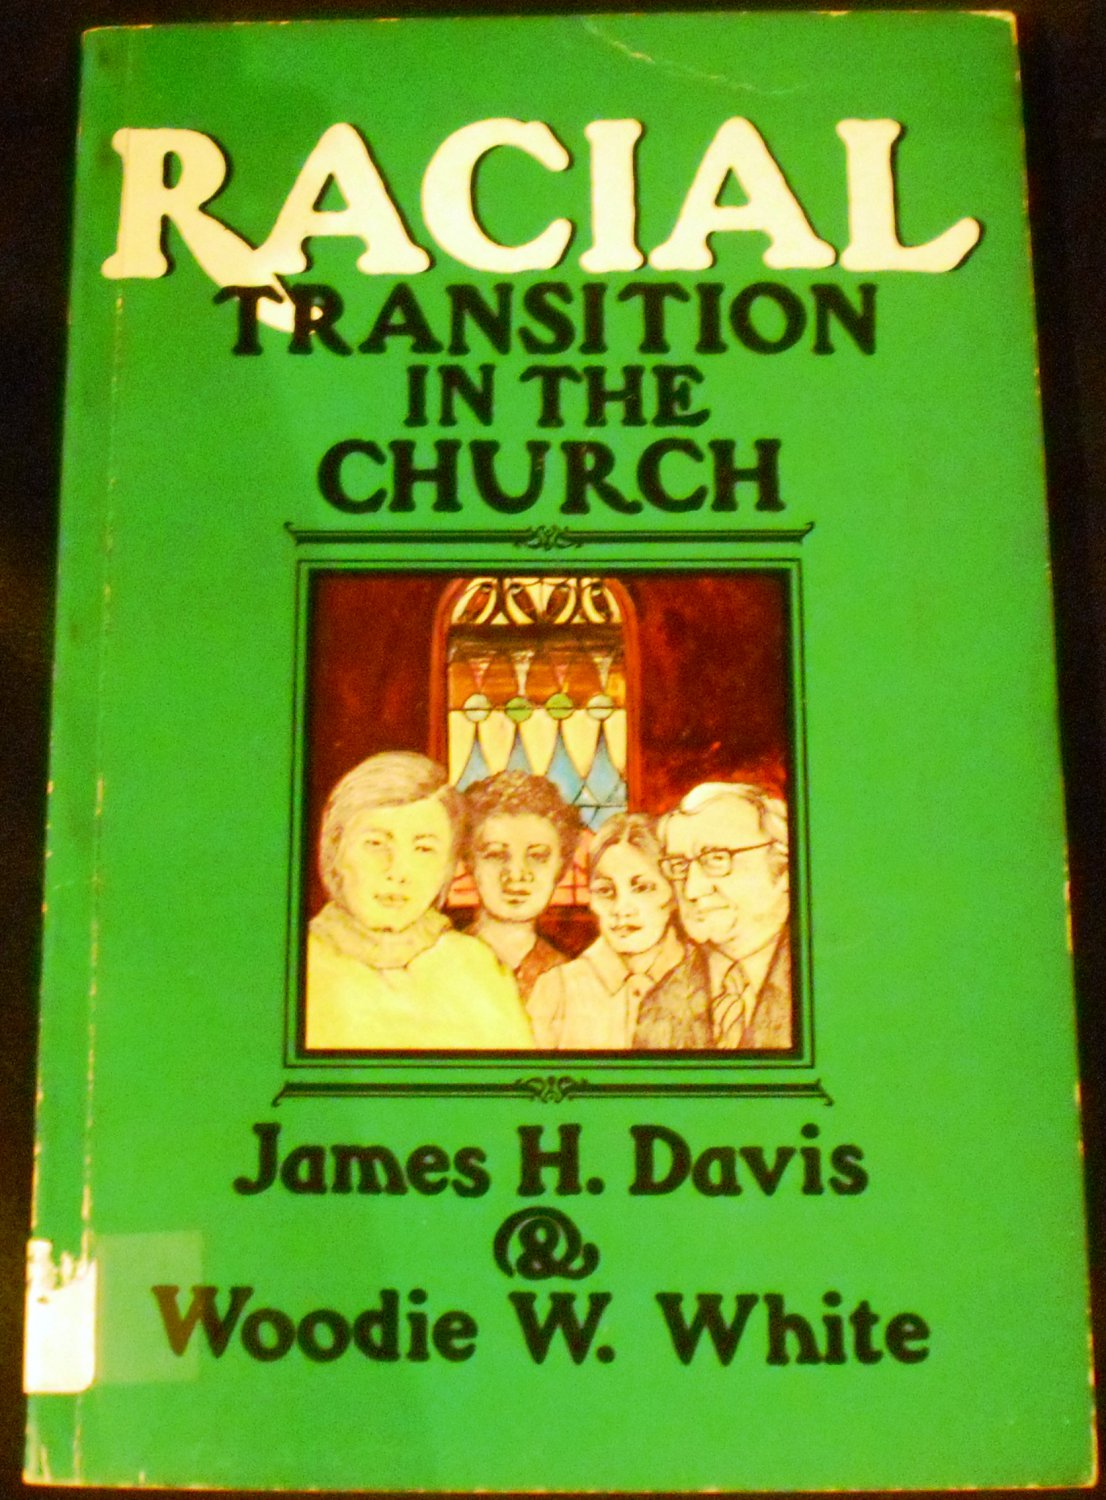 Racial transition in the church by James Hill Davis (1980)